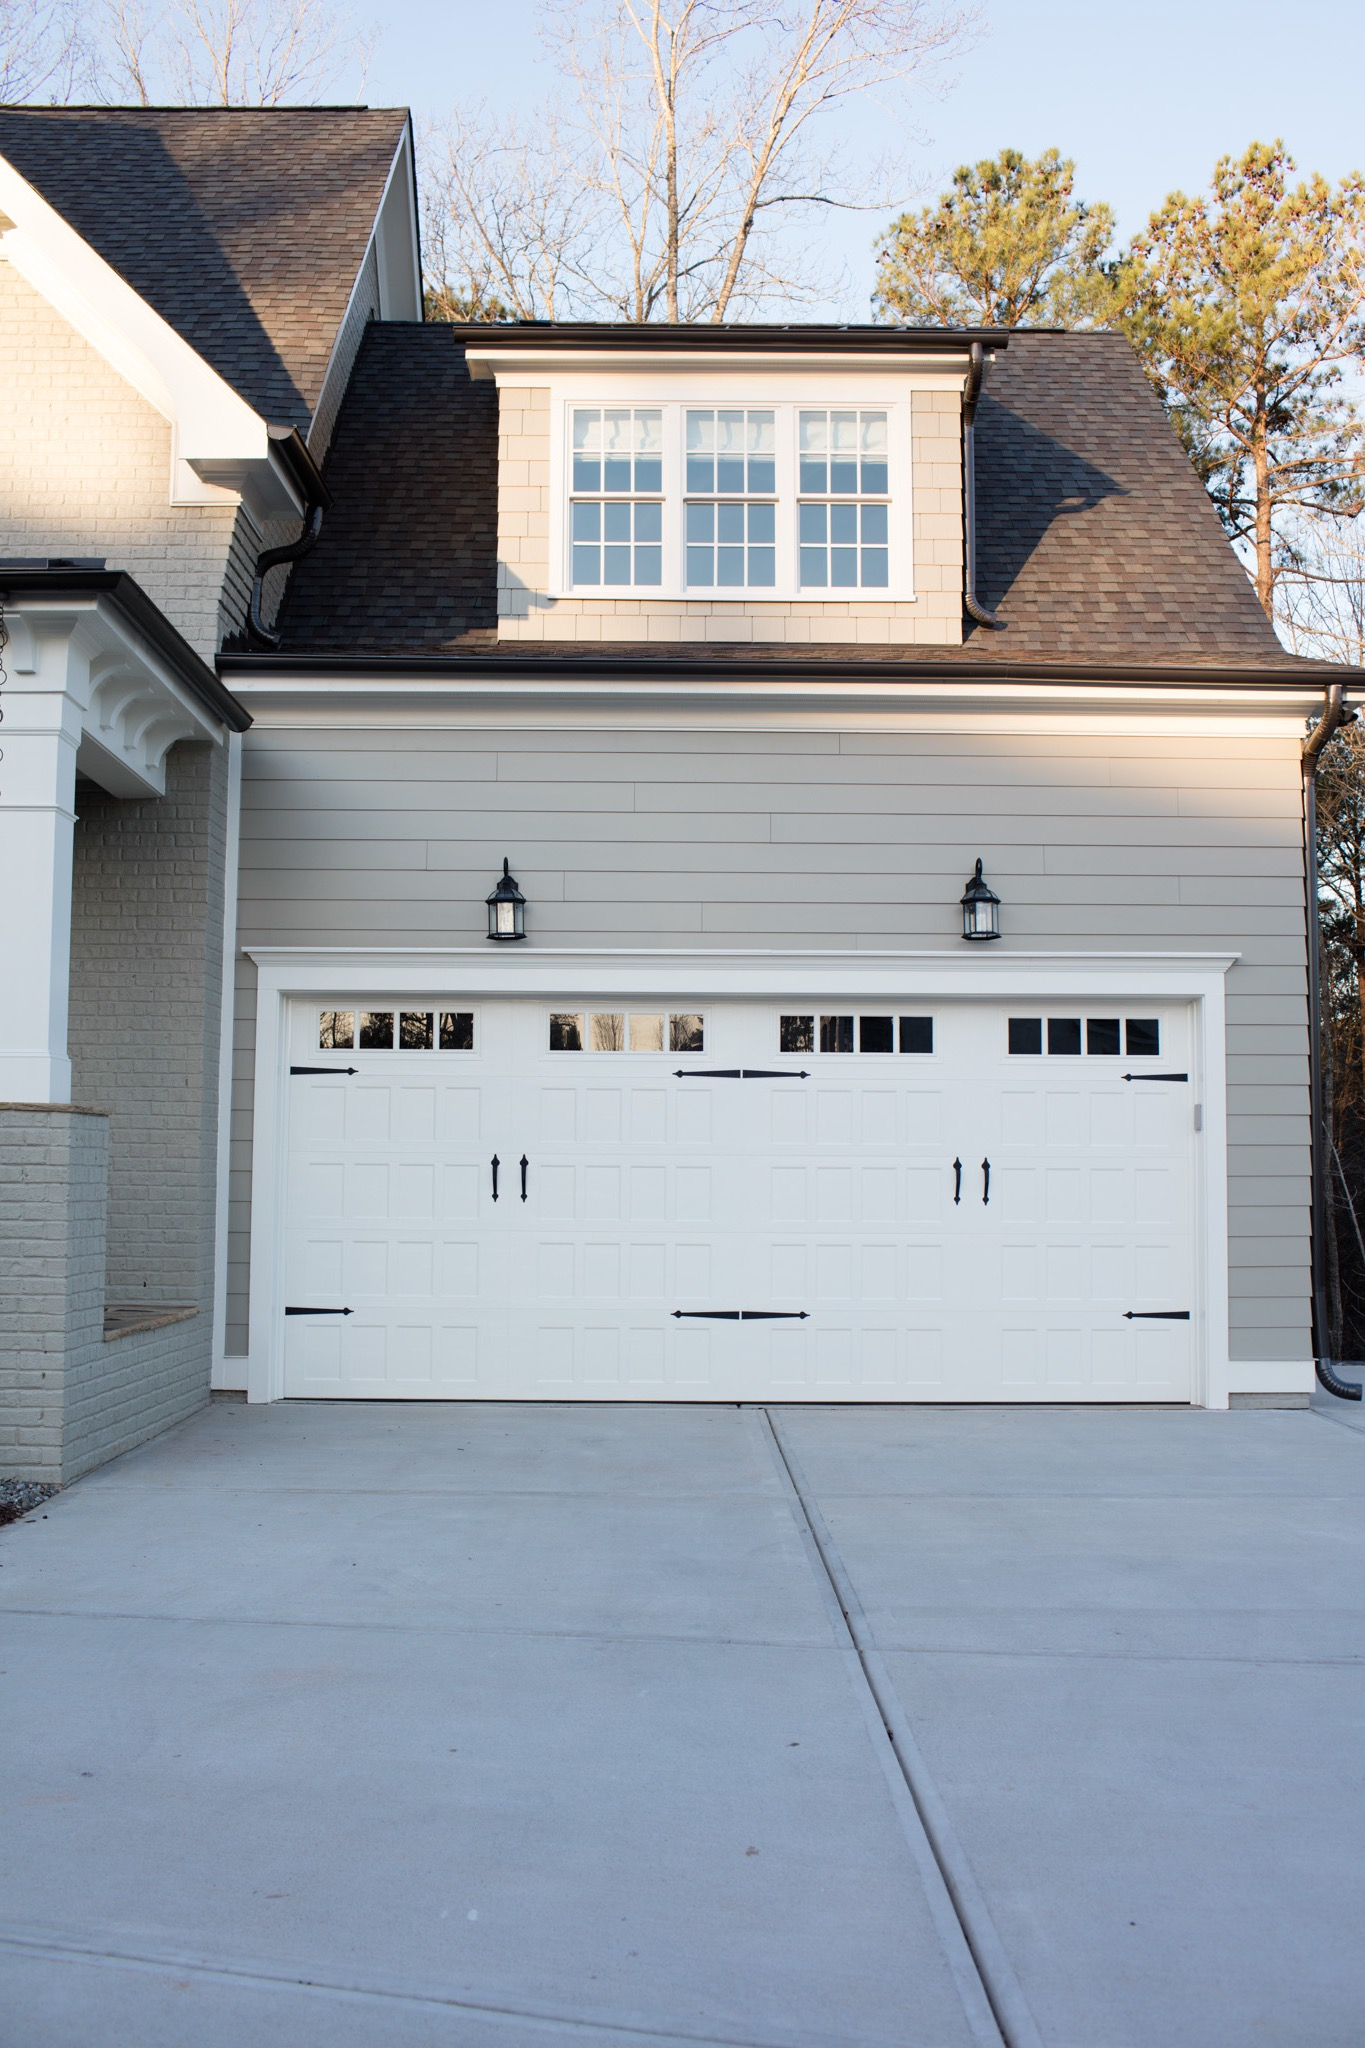 Carriage House Style Garage Door (Image 2 of 38)